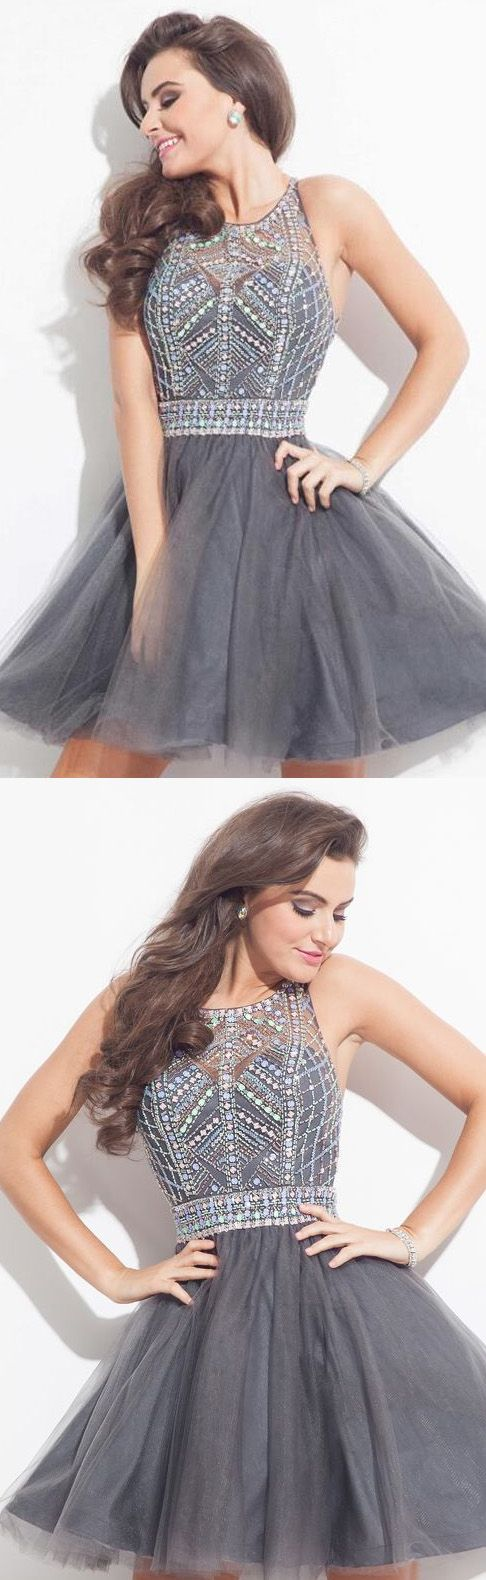 Prom Dresses 2017, Cheap Prom Dresses, Short Prom Dresses, Prom Dresses Cheap, 2017 Prom Dresses, Prom Short Dresses, Cheap Short Homecoming Dresses, Homecoming Dresses Cheap, Cheap Short Prom Dresses, Cheap Homecoming Dresses, Homecoming Dresses 2017, Short Party Dresses, Grey Short Mini Party Dresses, Mini Short Homecoming Dresses, Mini Prom Dresses, 2017 Homecoming Dress Sexy Rhinestone Bateau Short Prom Dress Party Dress